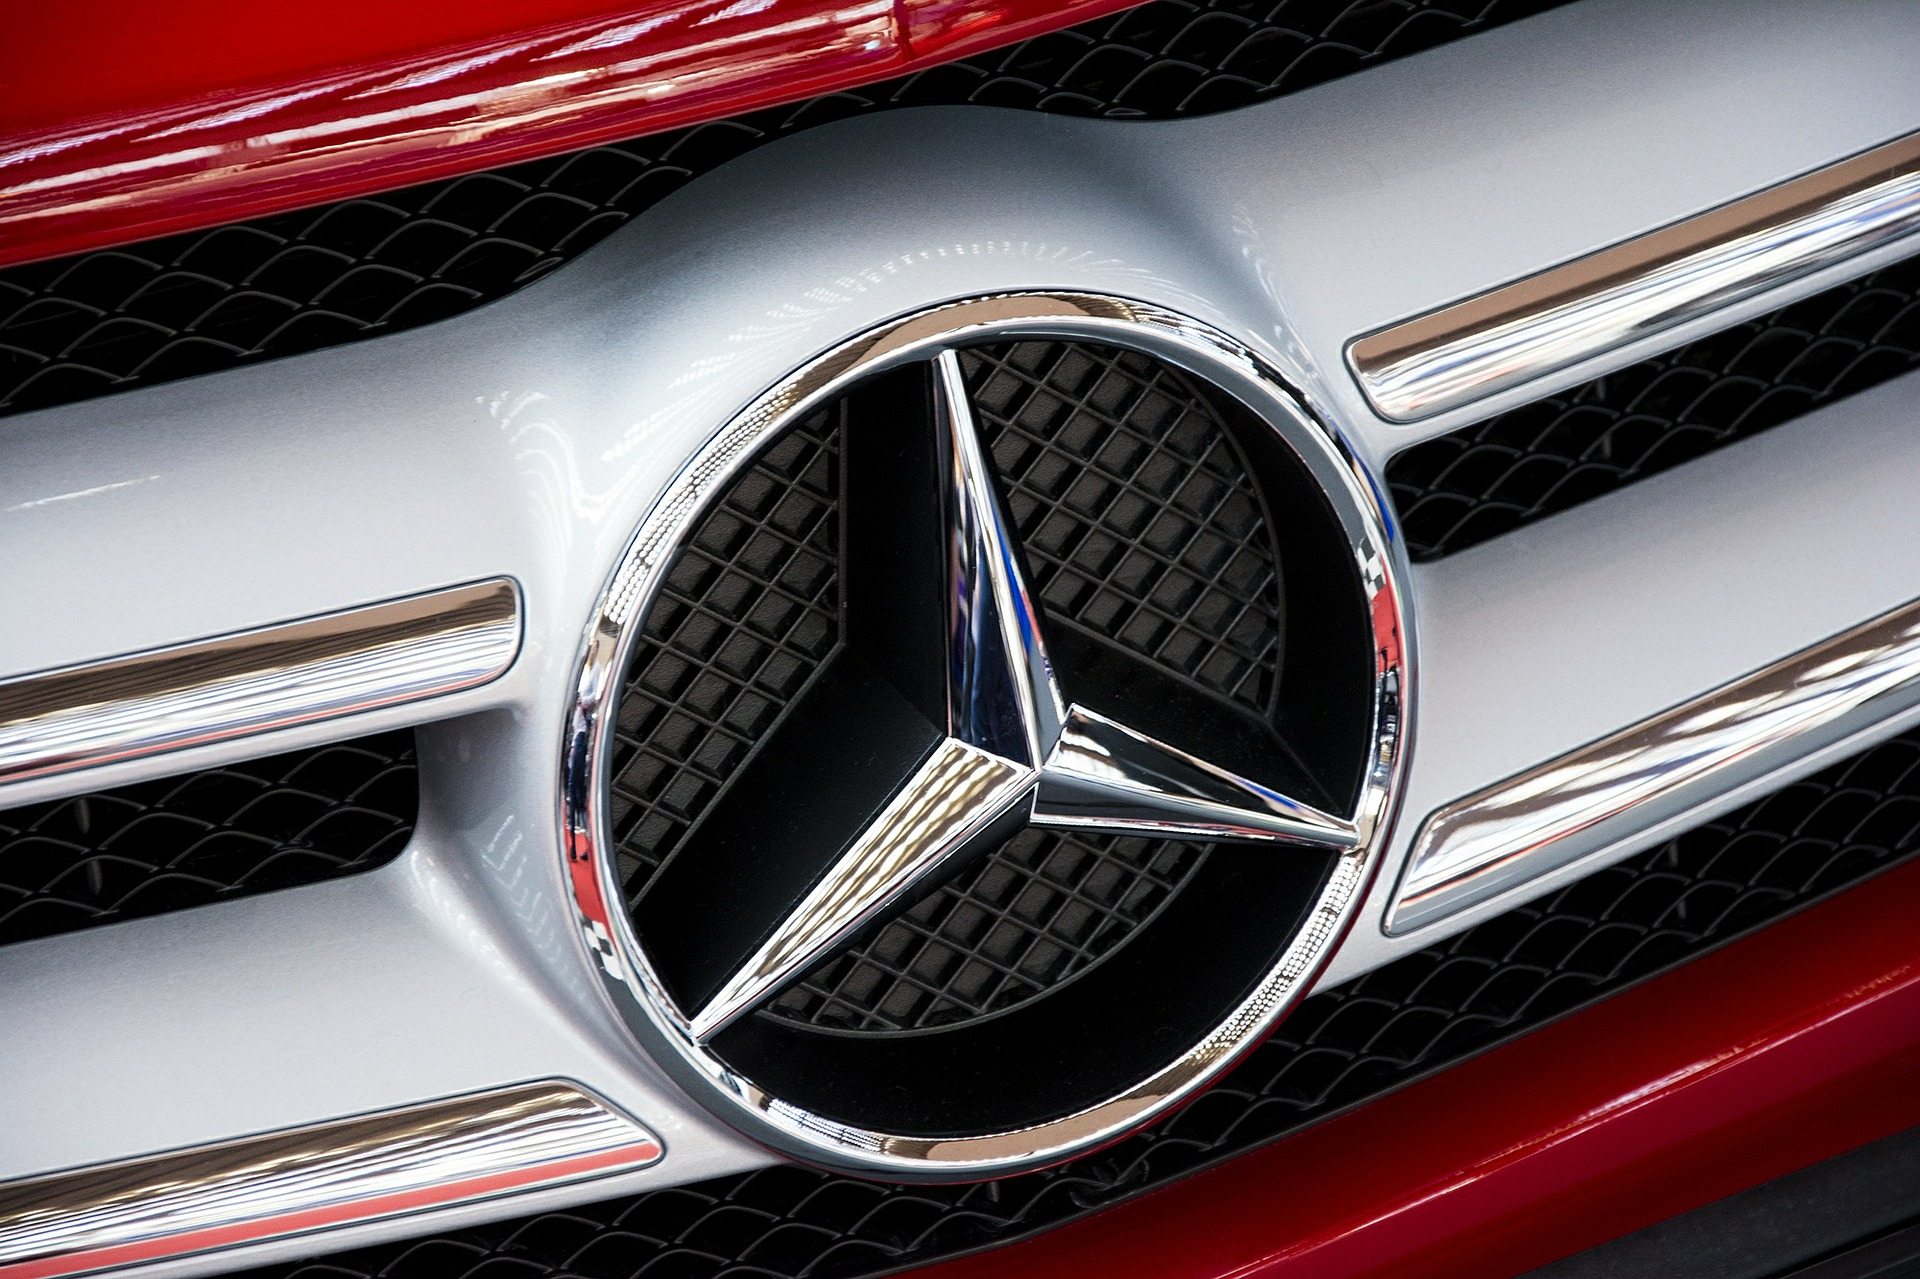 Mercedes-Benz Recalls One Million Vehicles After 51 Units Catch Fire